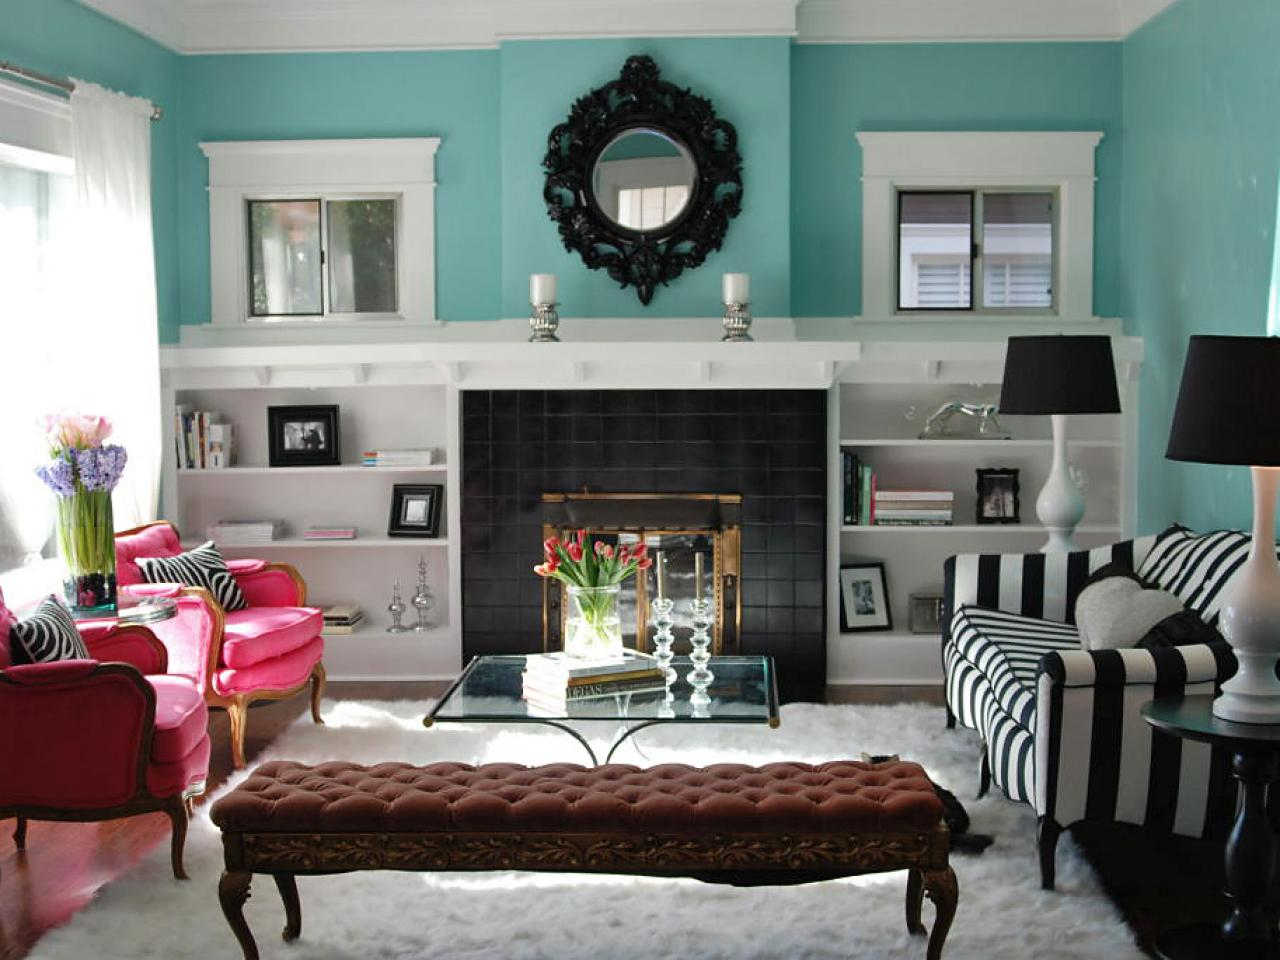 How To Build Bookshelves Around A Fireplace Hgtv